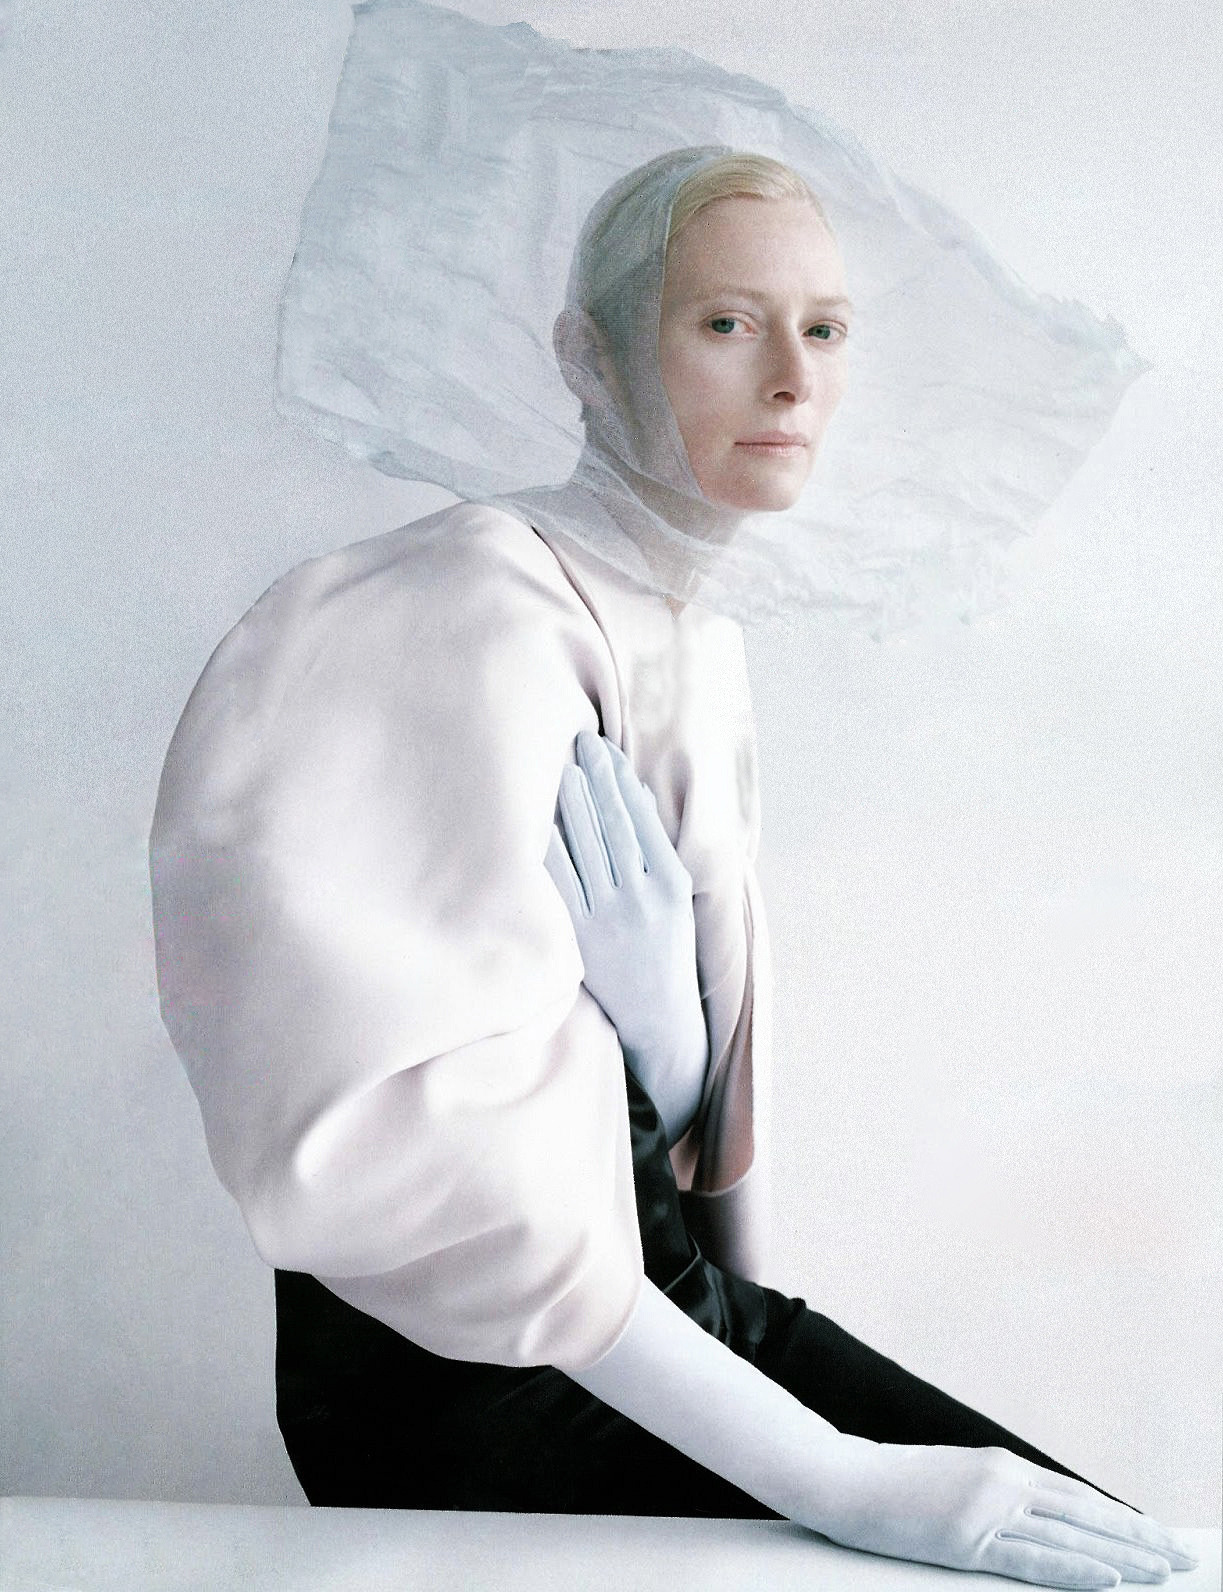 Tilda Swinton photographed by Tim Walker